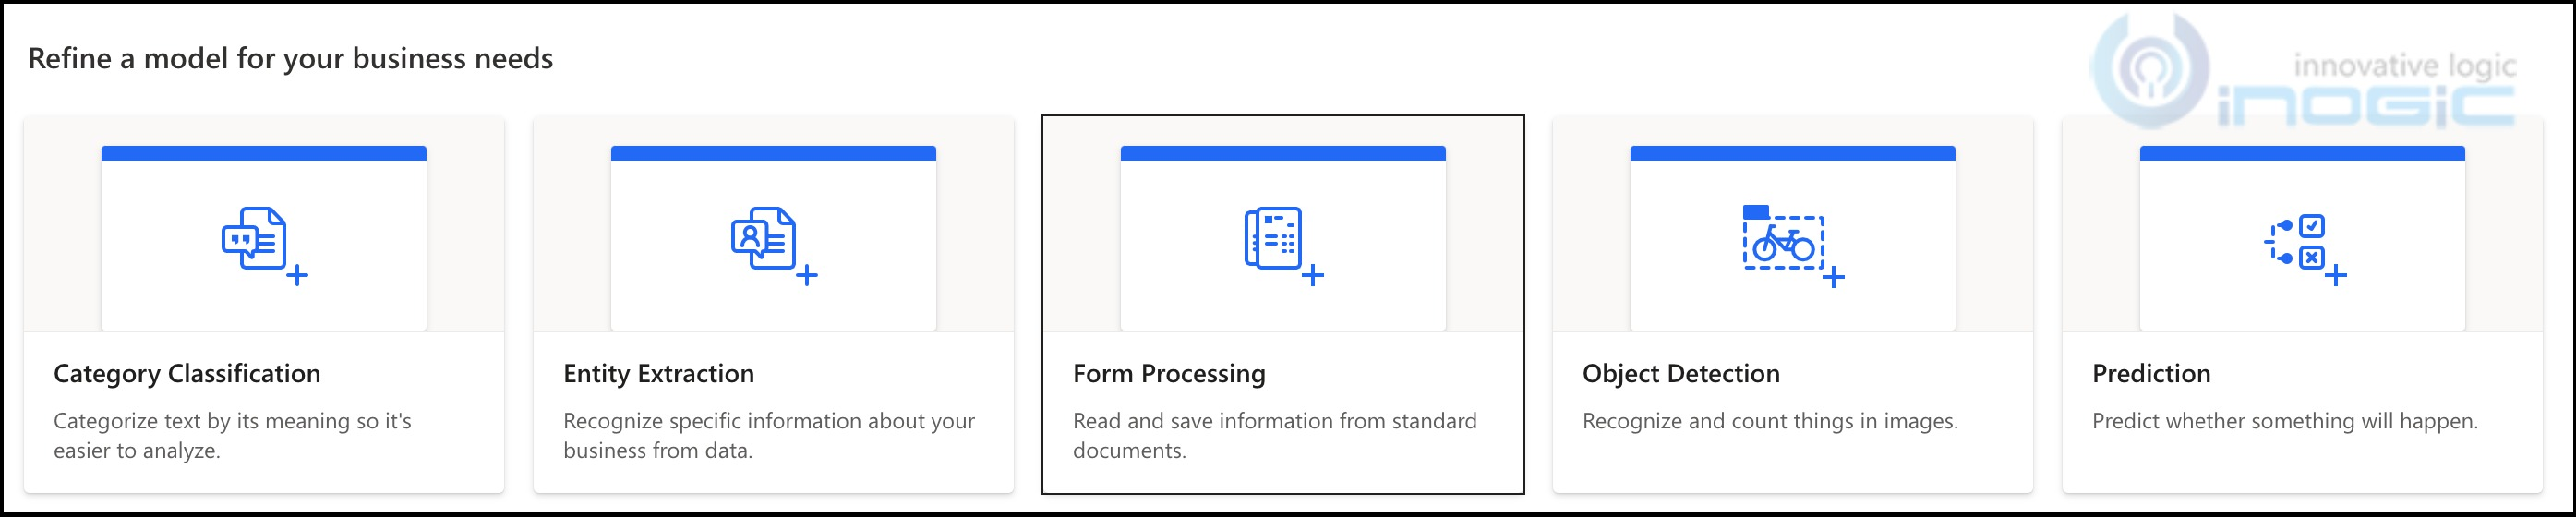 Microsoft Document Automation Application using AI Builder Form Processing Model